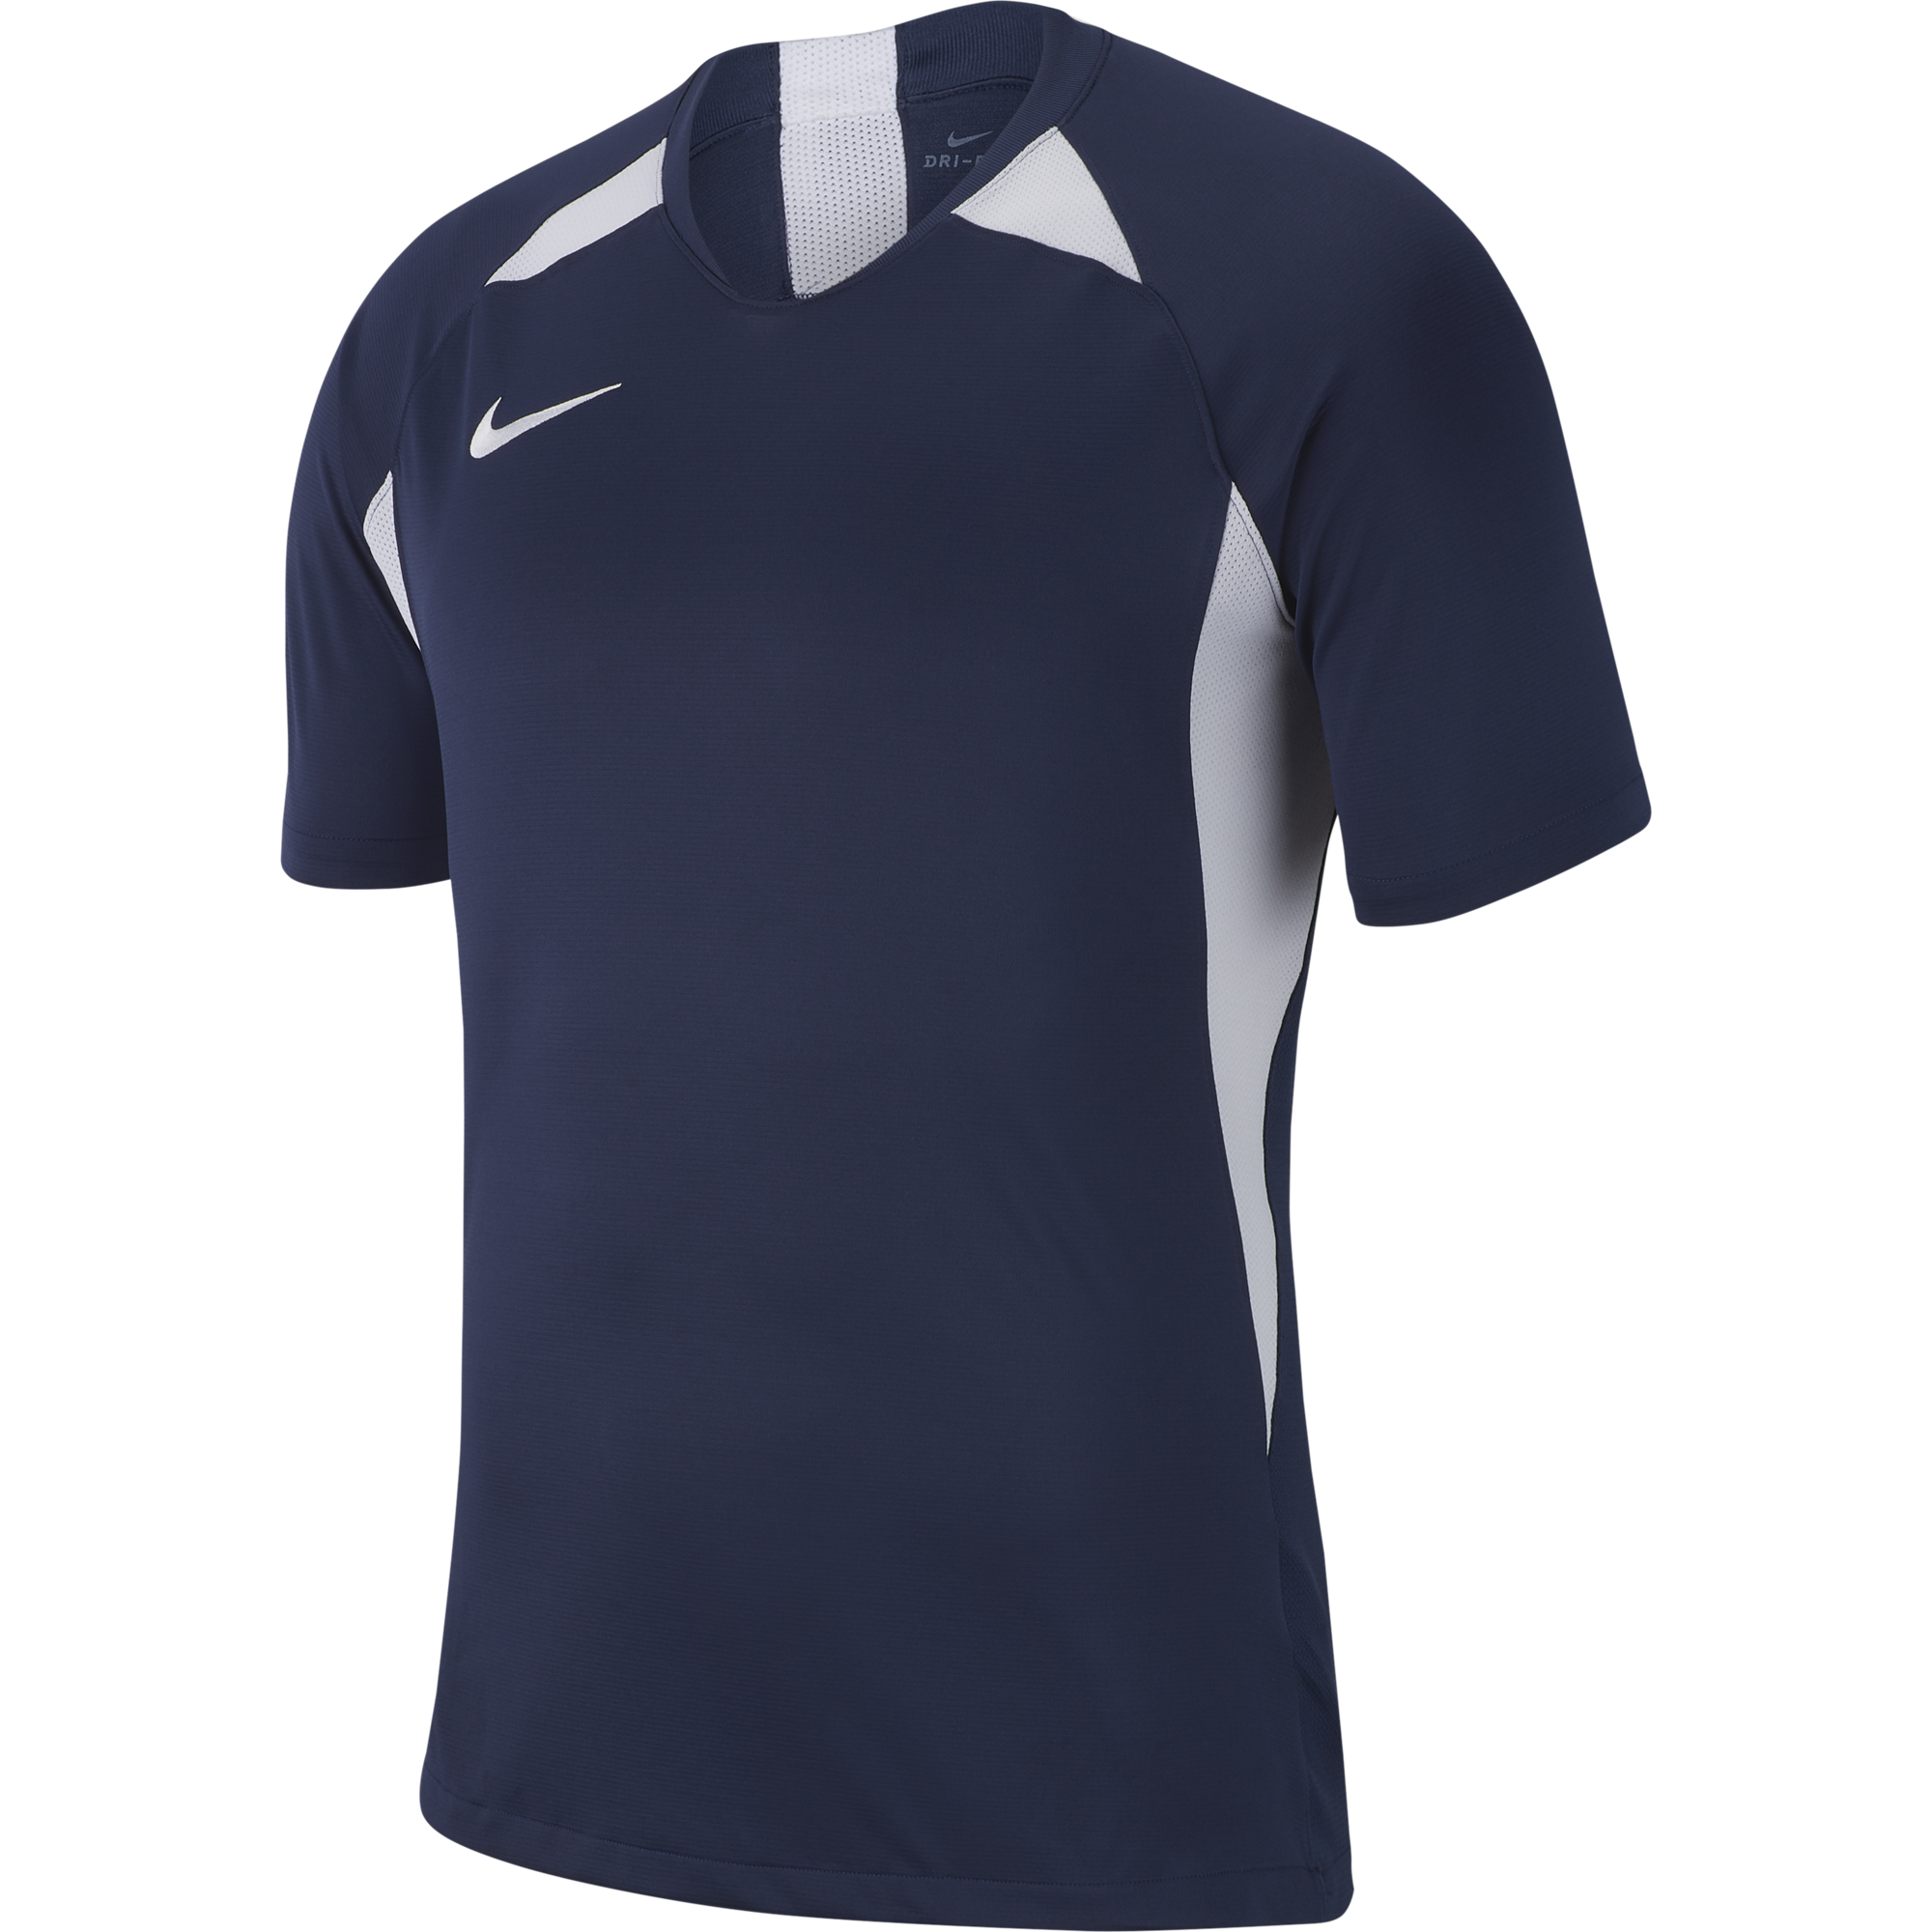 nike legend jersey midnight navy white  15951 p